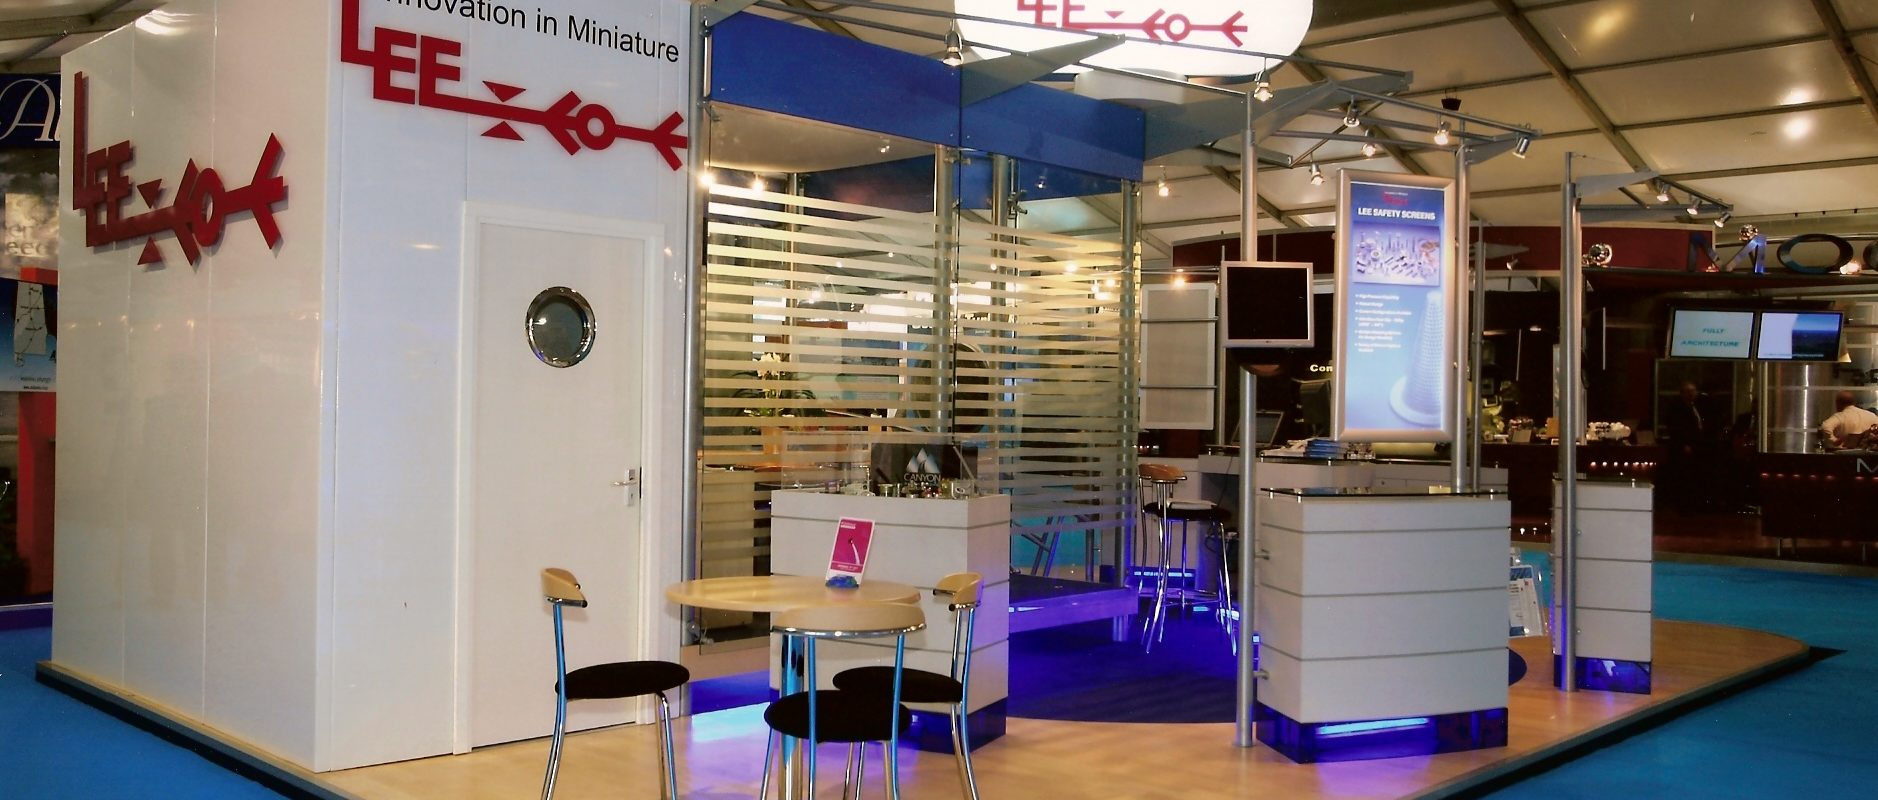 Envisage Exhibition Stand Design And Build Uk : Xhibeo build exhibition stands design exhibition design company